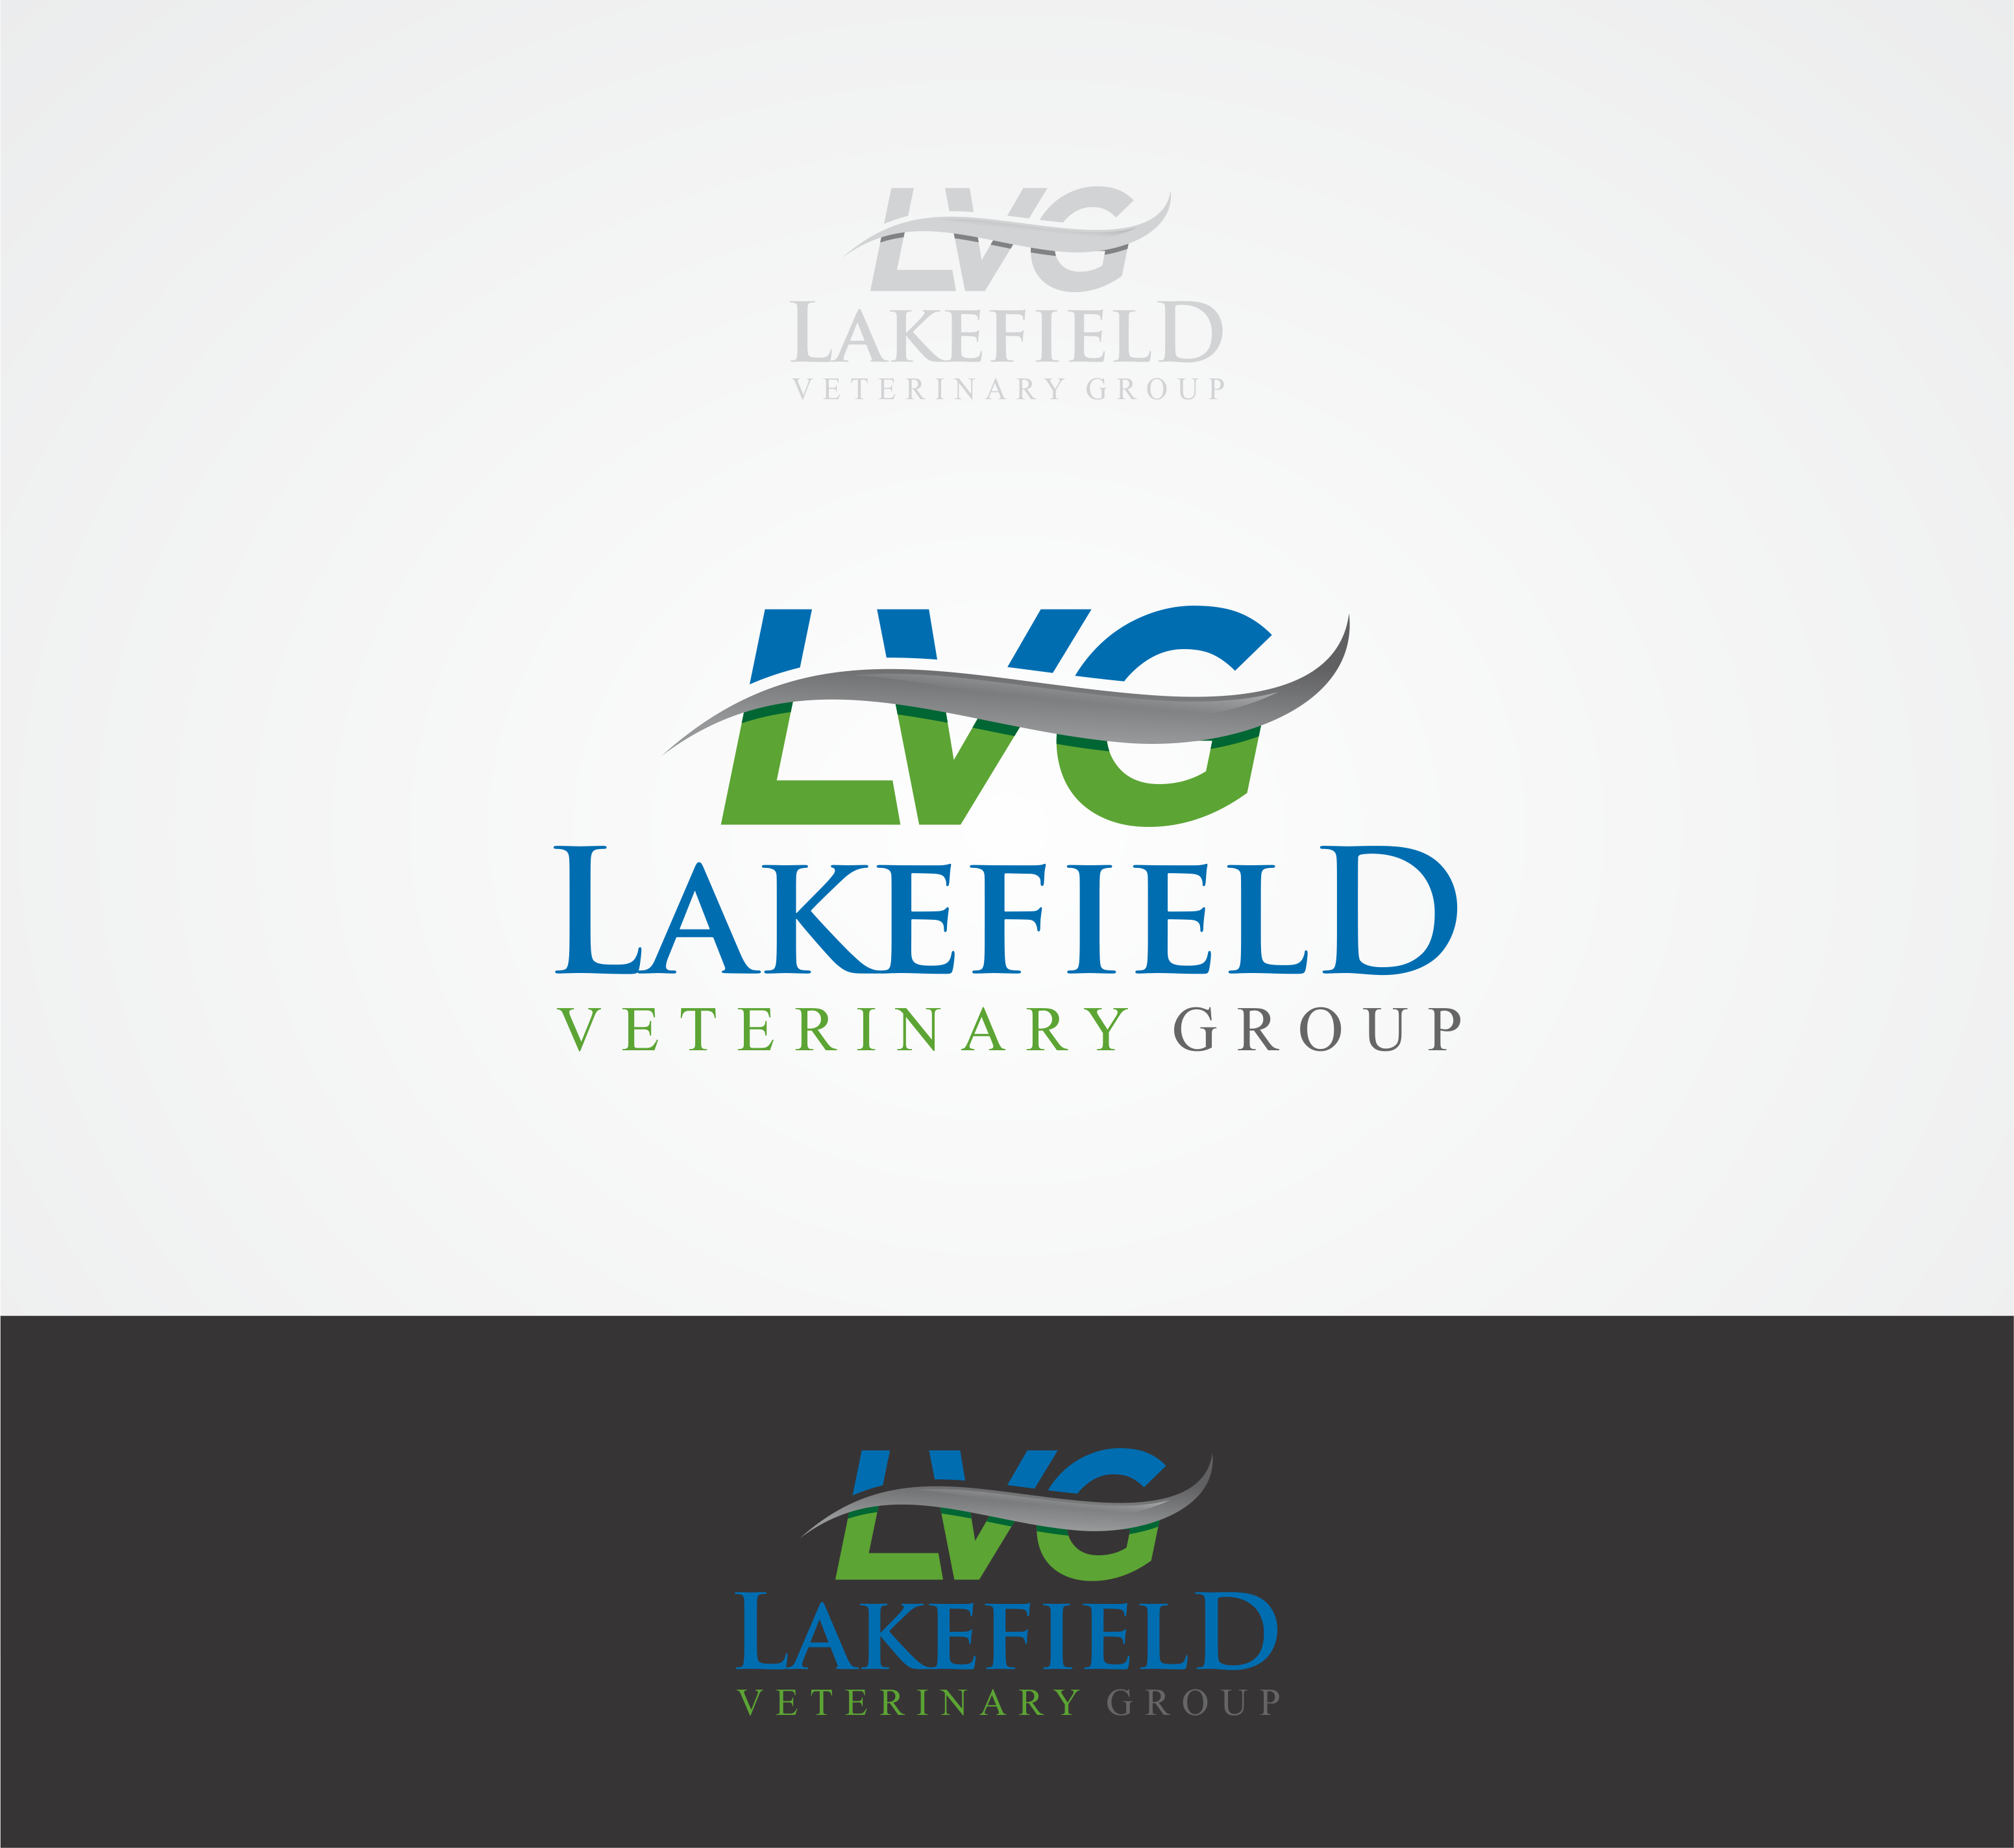 Logo Design by Raymond Garcia - Entry No. 72 in the Logo Design Contest Inspiring Logo Design for Lakefield Veterinary Group.